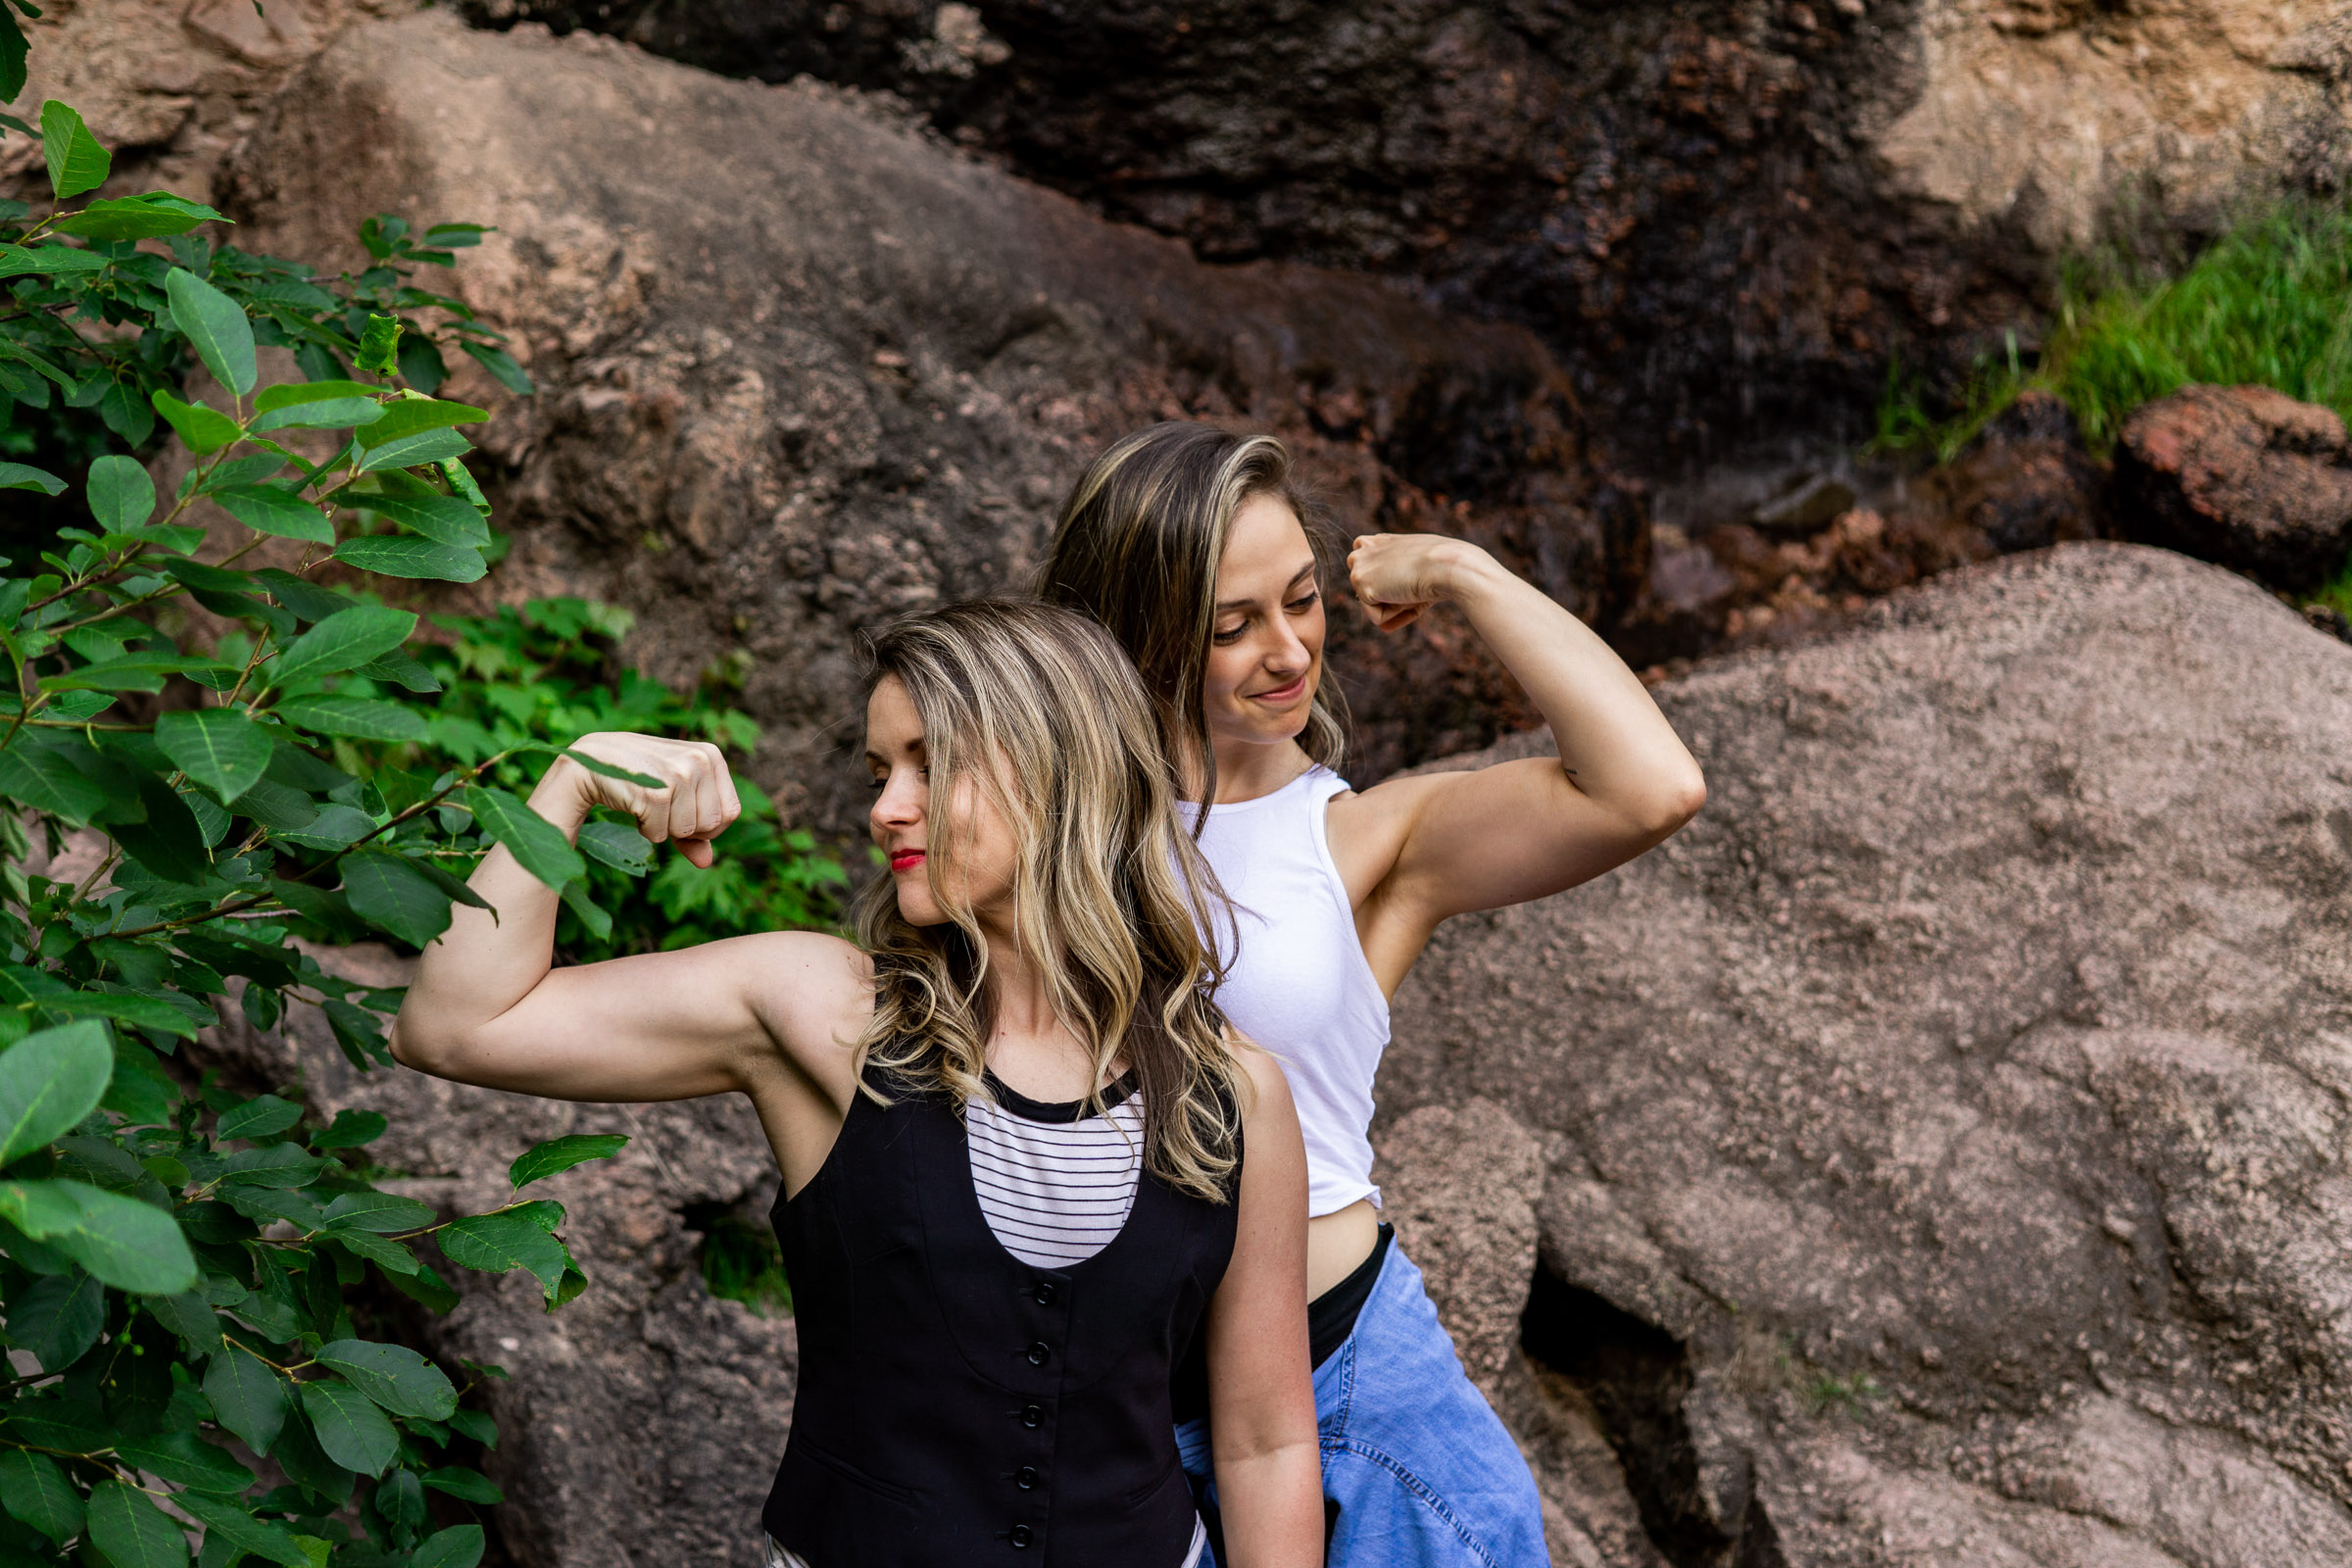 Two strong badass women compare biceps in this colorado engagement picture